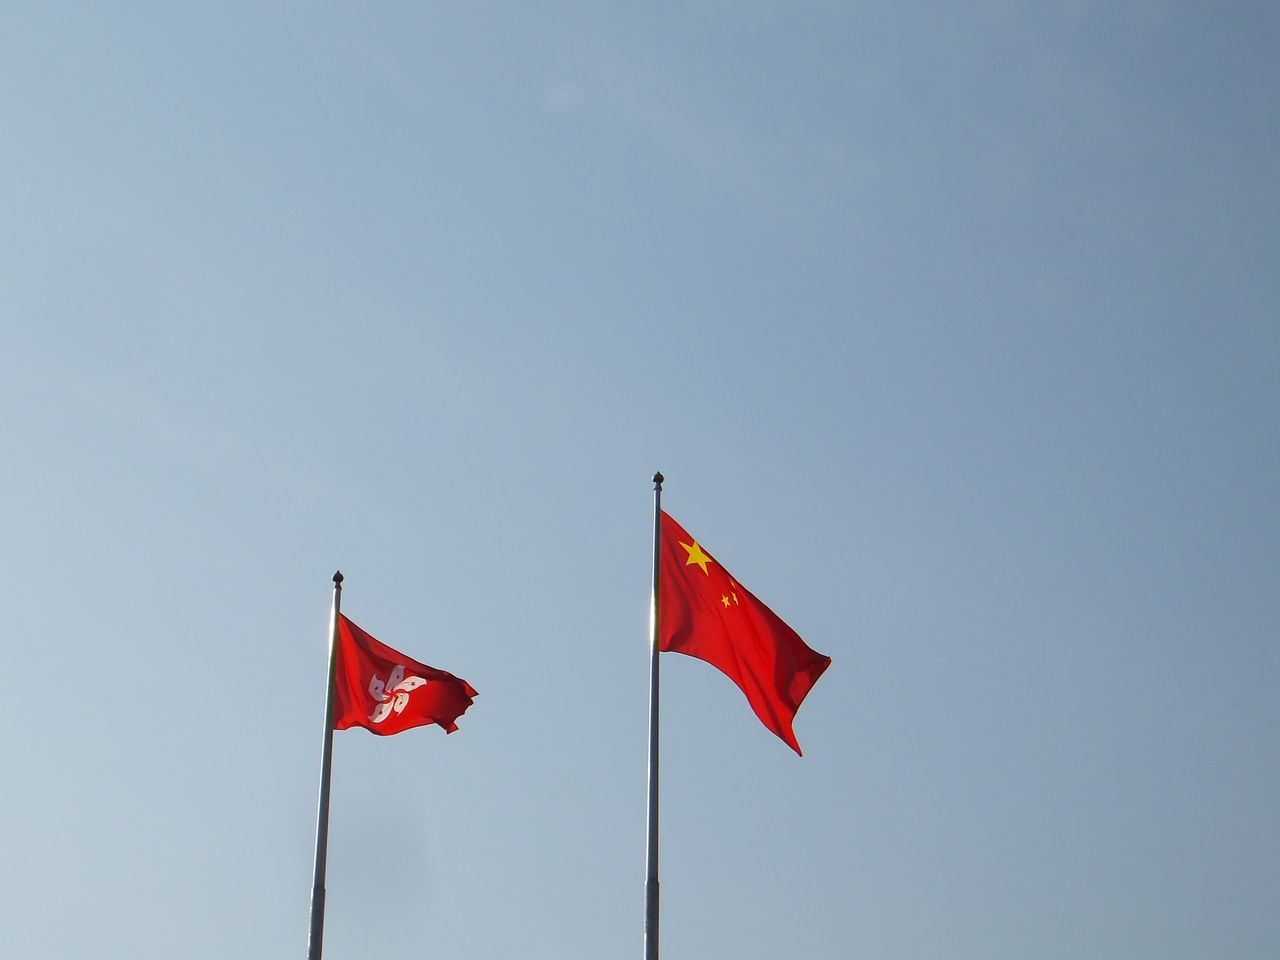 Blue Sky Chinese Flag Flag Flagpole Hong Kong Flag National Flag Red Flags InHong Kong Two Is Better Than One